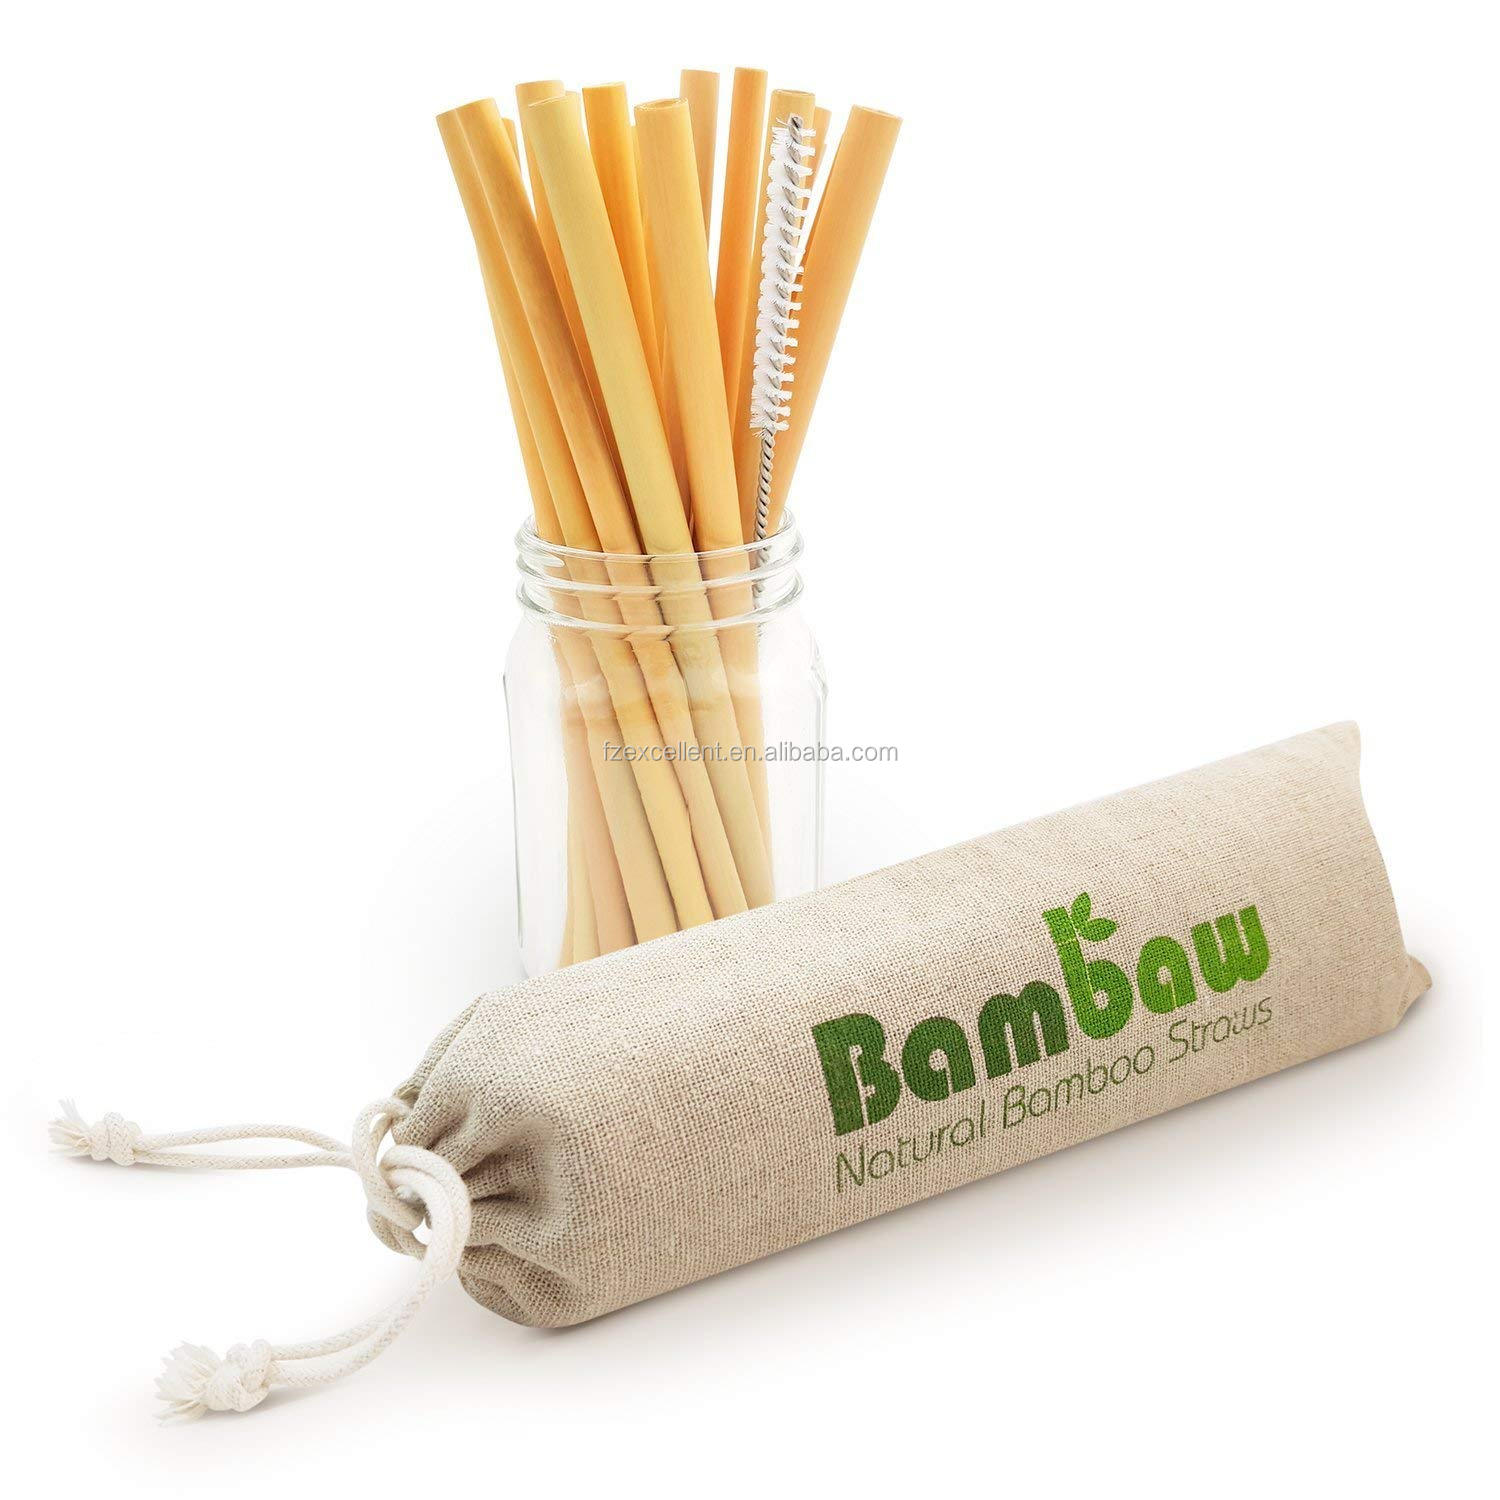 China Wholesale High Quality Drinking Customized Logo Bamboo Straw Natural With Cleaning Brush